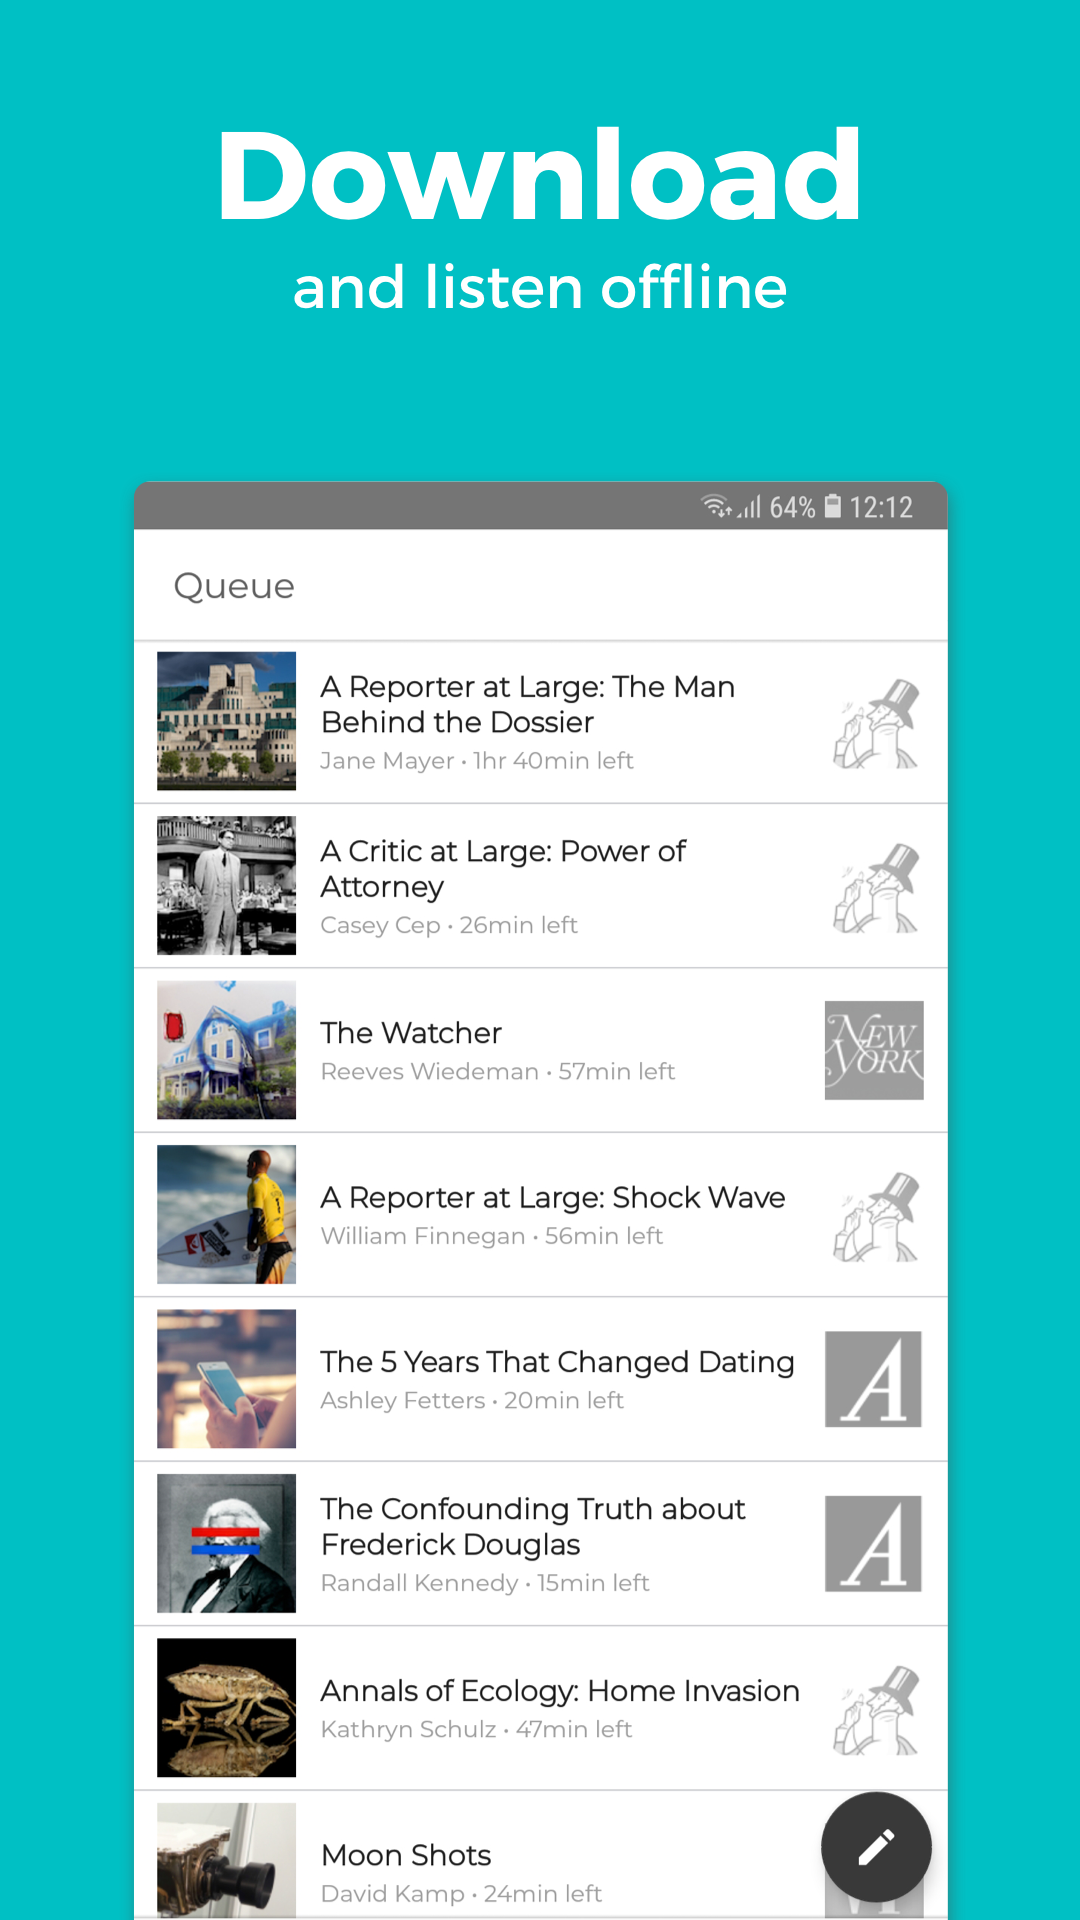 13 New And Notable Android Apps And Live Wallpapers From The